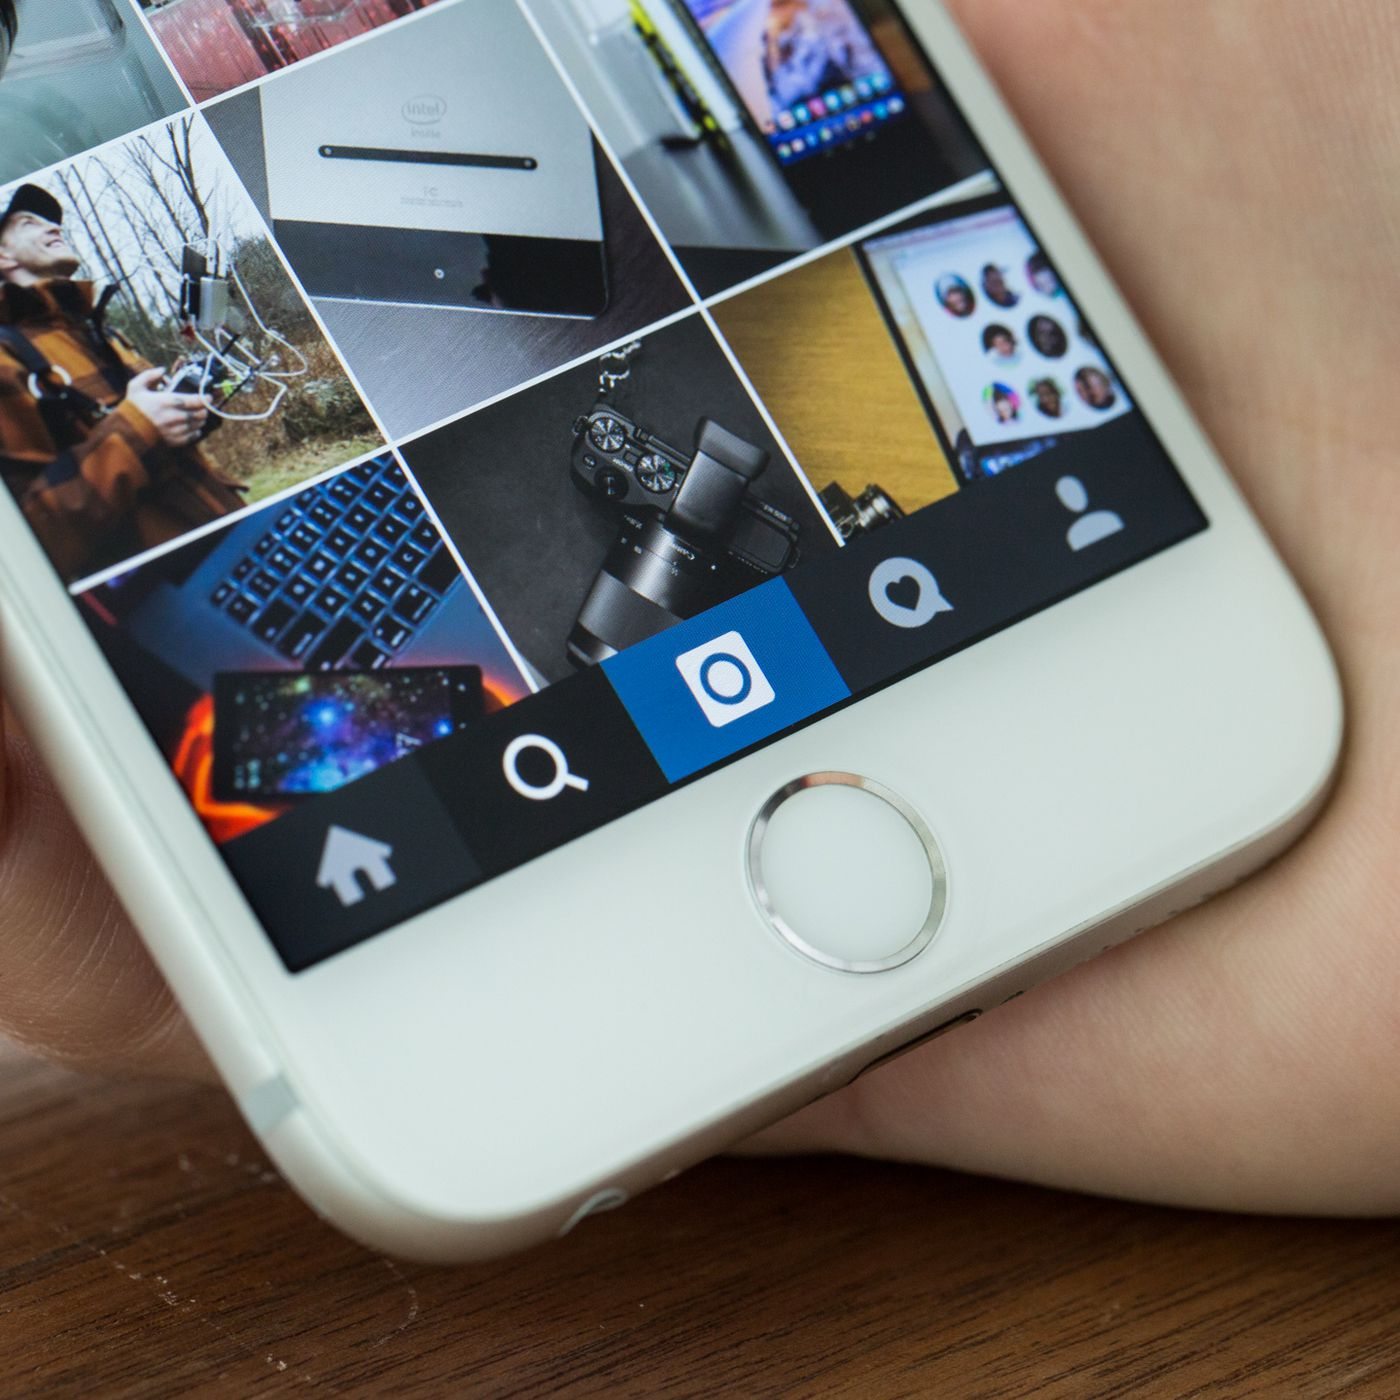 theverge.com - Casey Newton - Instagram adds a shopping tab to the Explore page